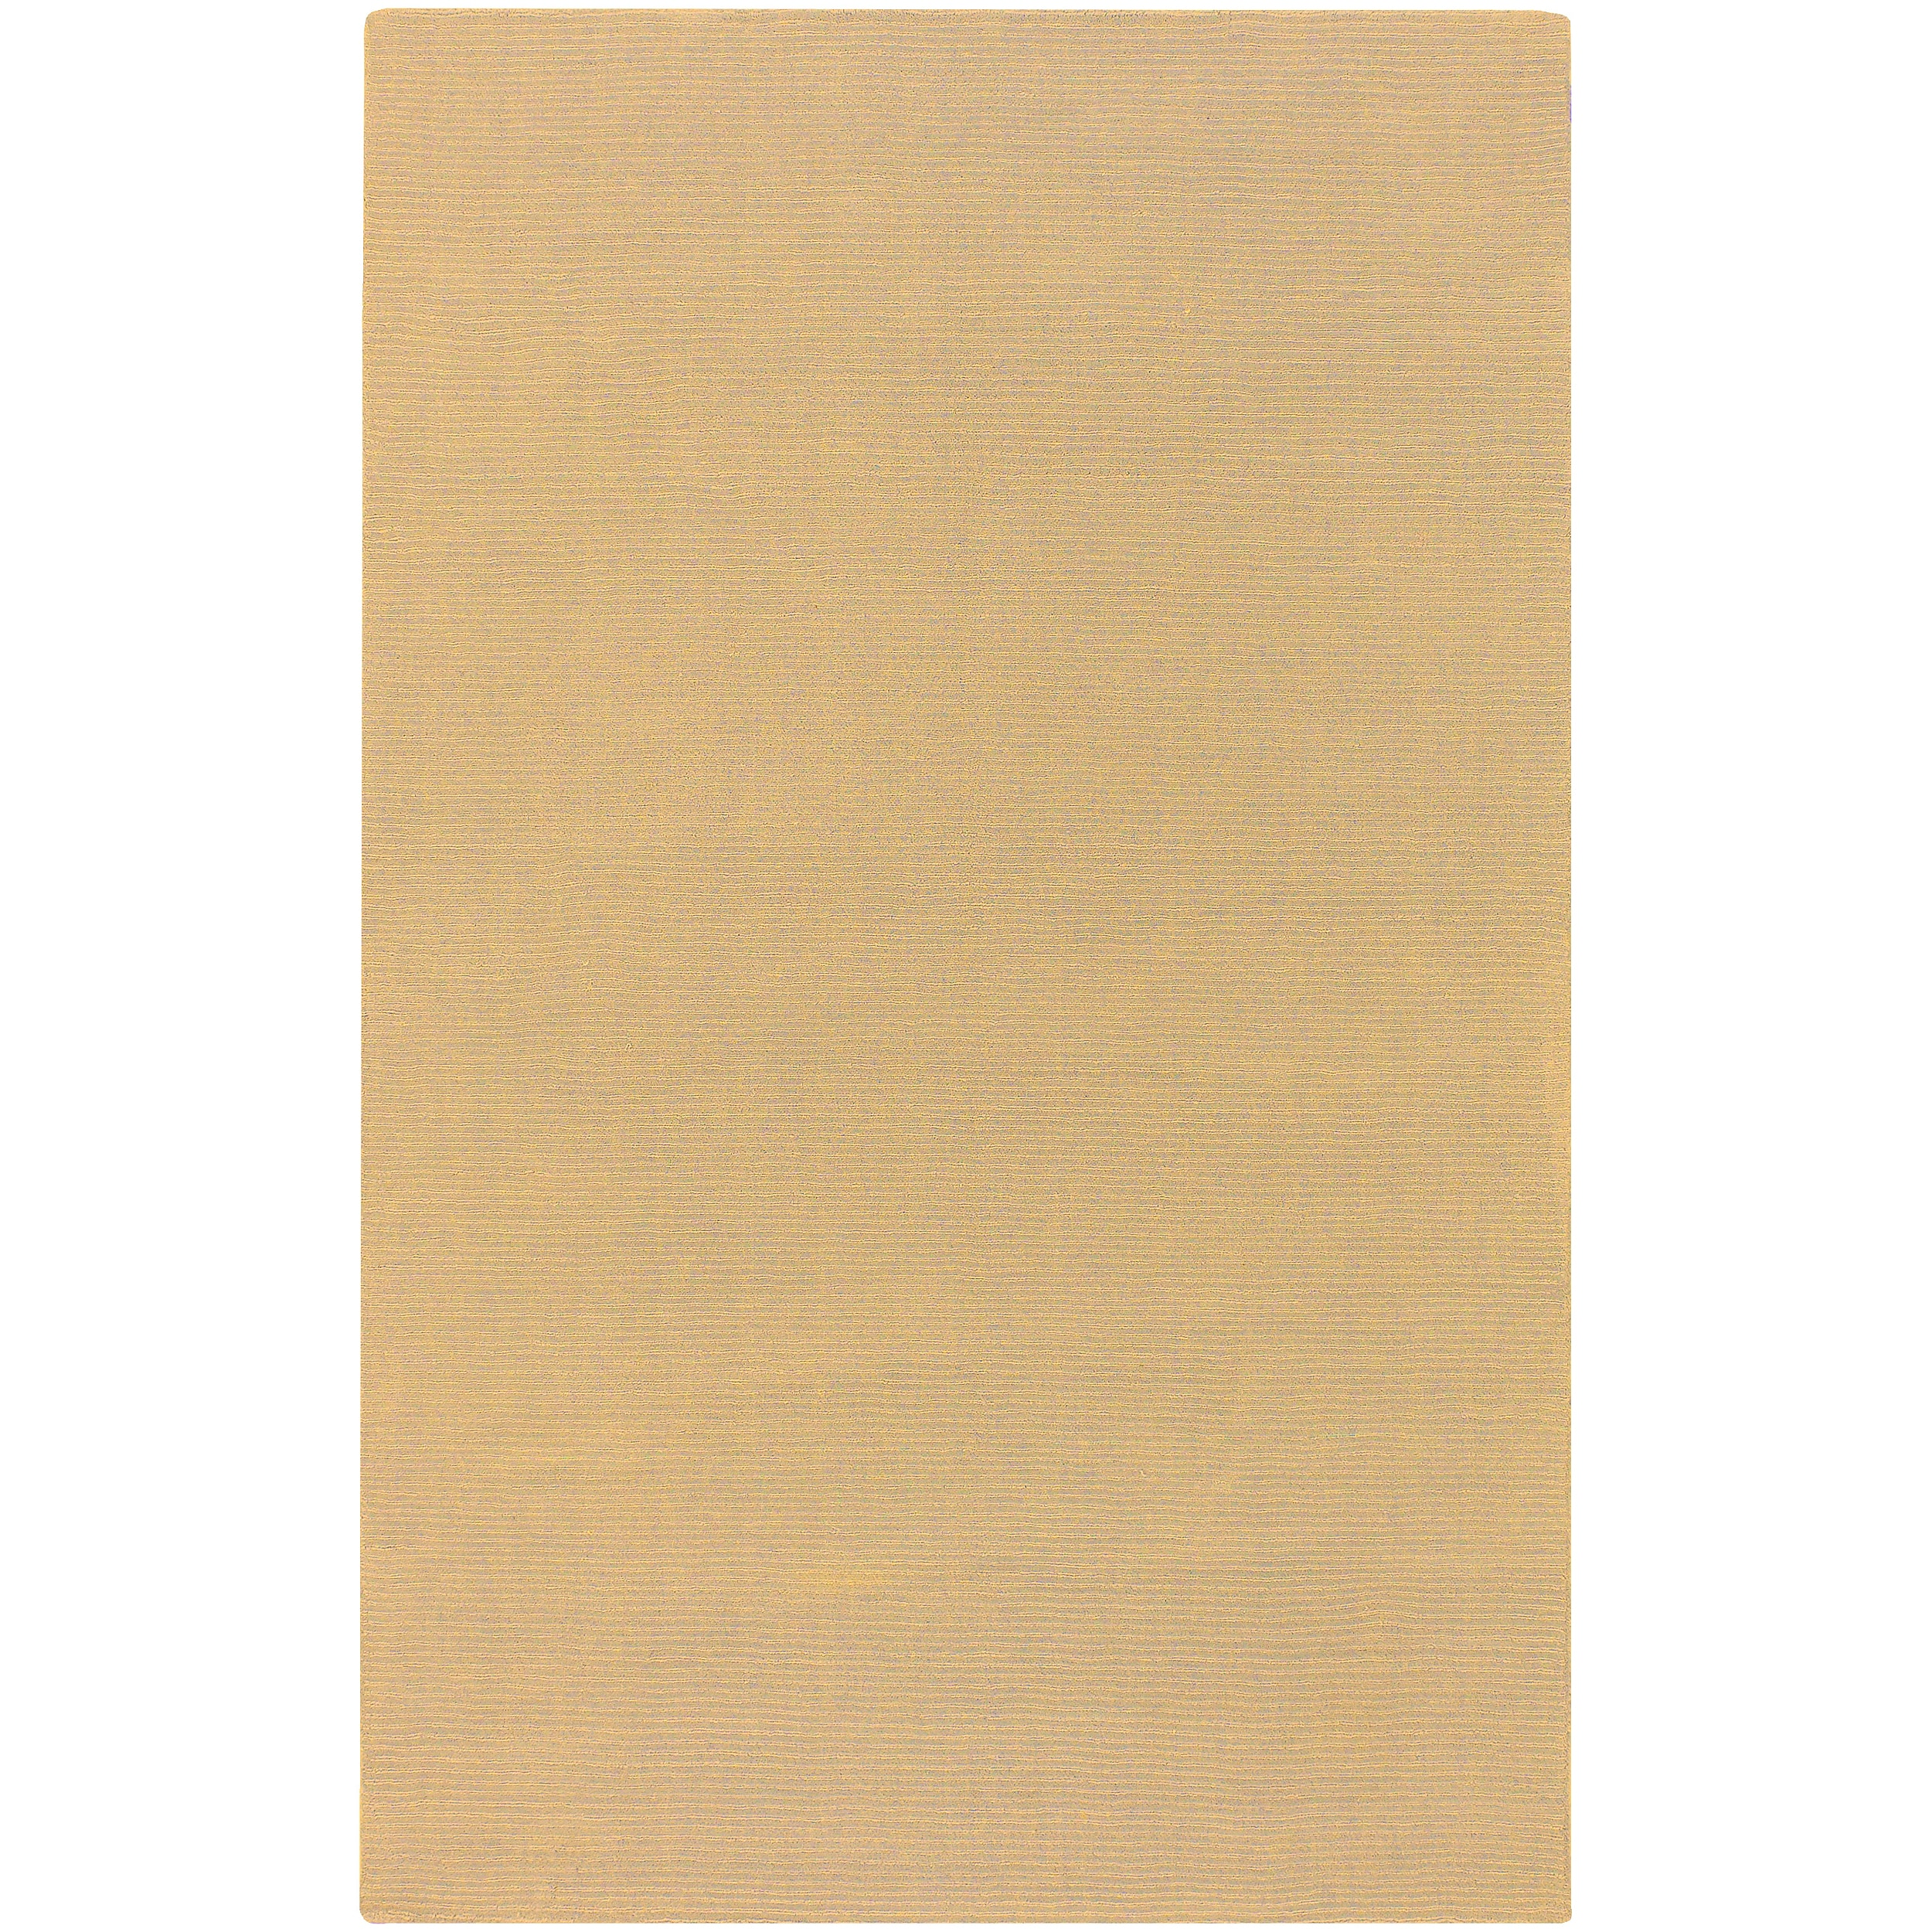 Hand-crafted Solid Beige Casual Majestic Wool Area Rug - 8' x 11'